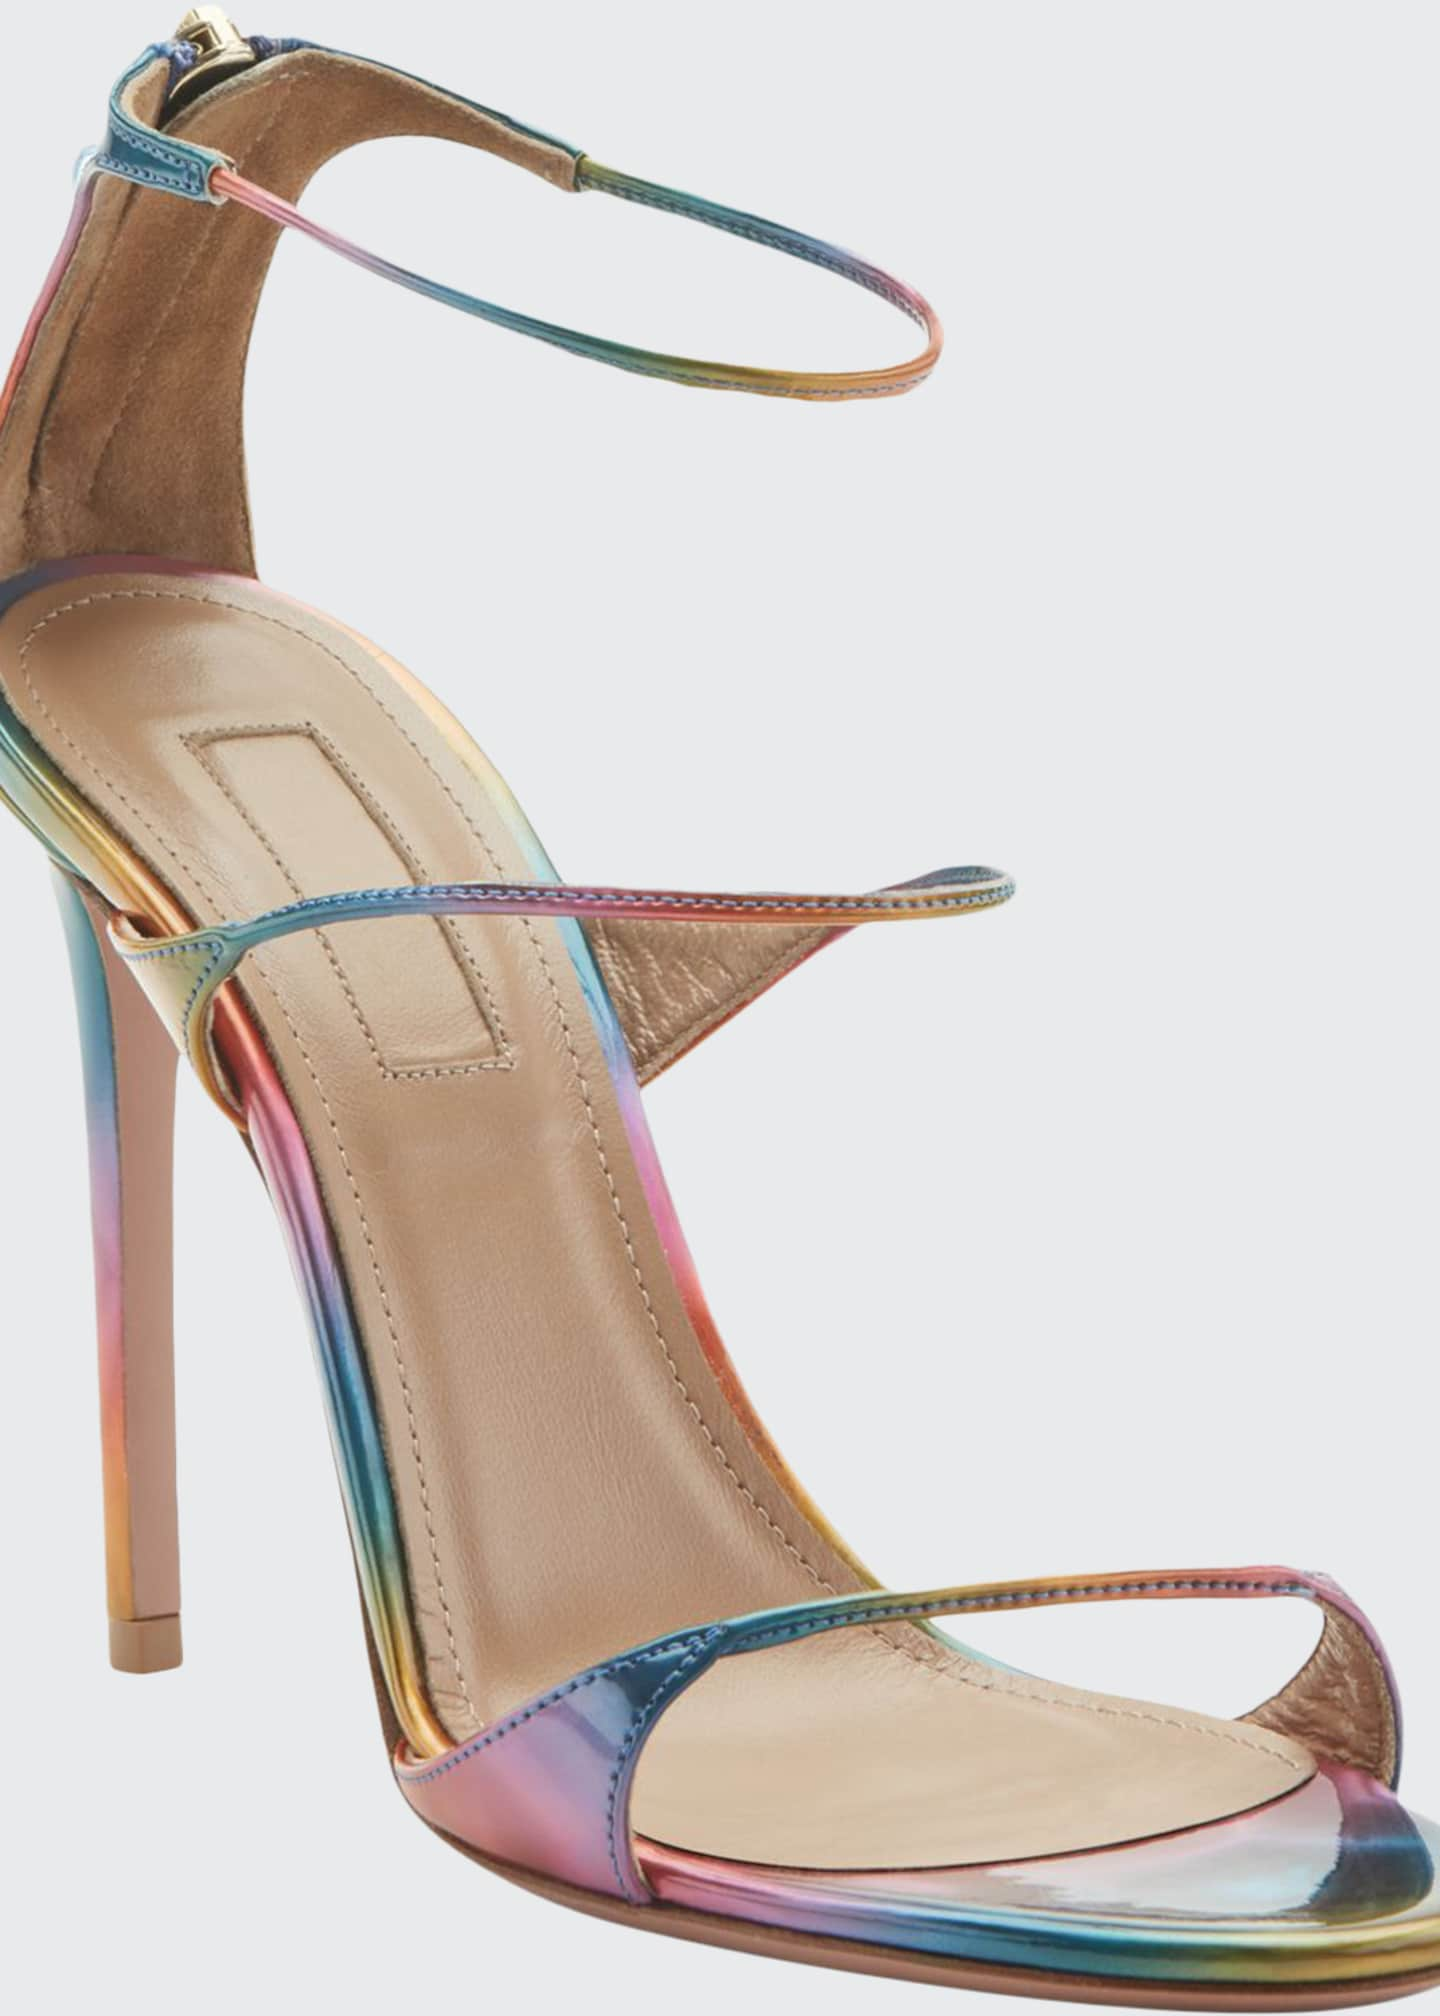 Aquazzura Minute Holographic High Sandals